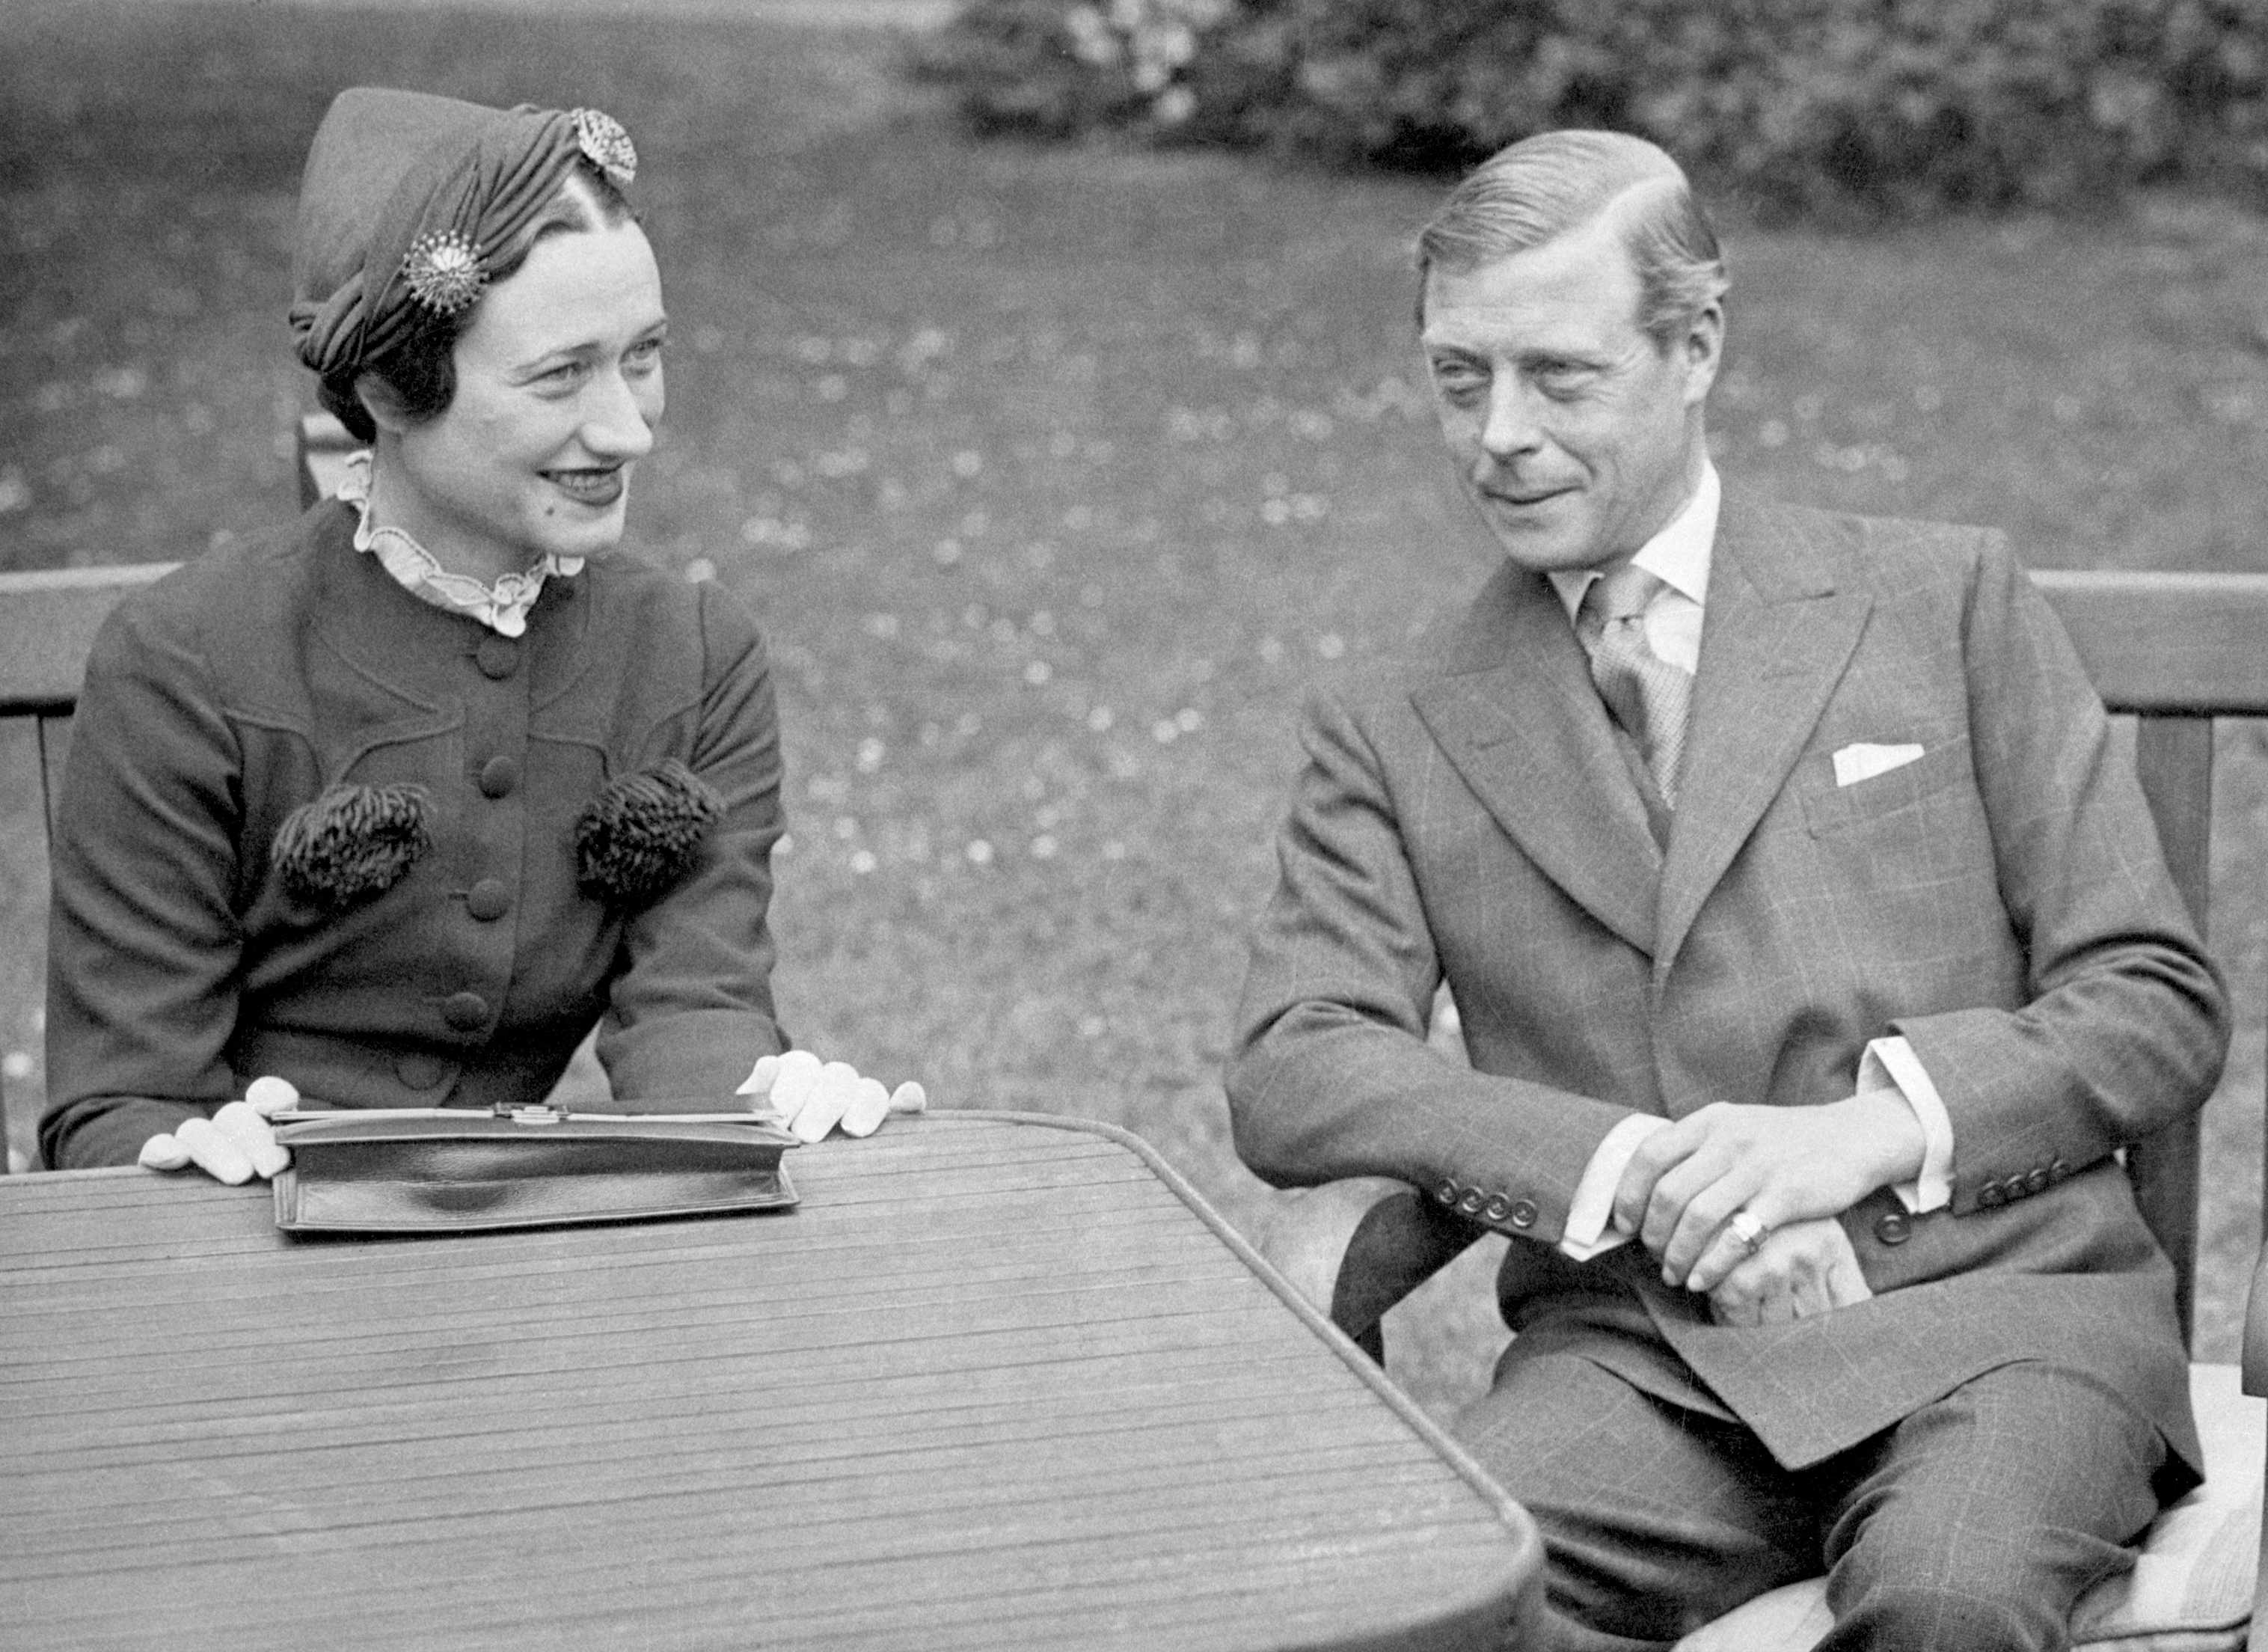 (Original Caption) 1937- France: Edward VIII, Duke of Windsor, sits with his wife Wallis Simpson at the Chateau de Cands in France. Photo shows a close-up view of the couple.